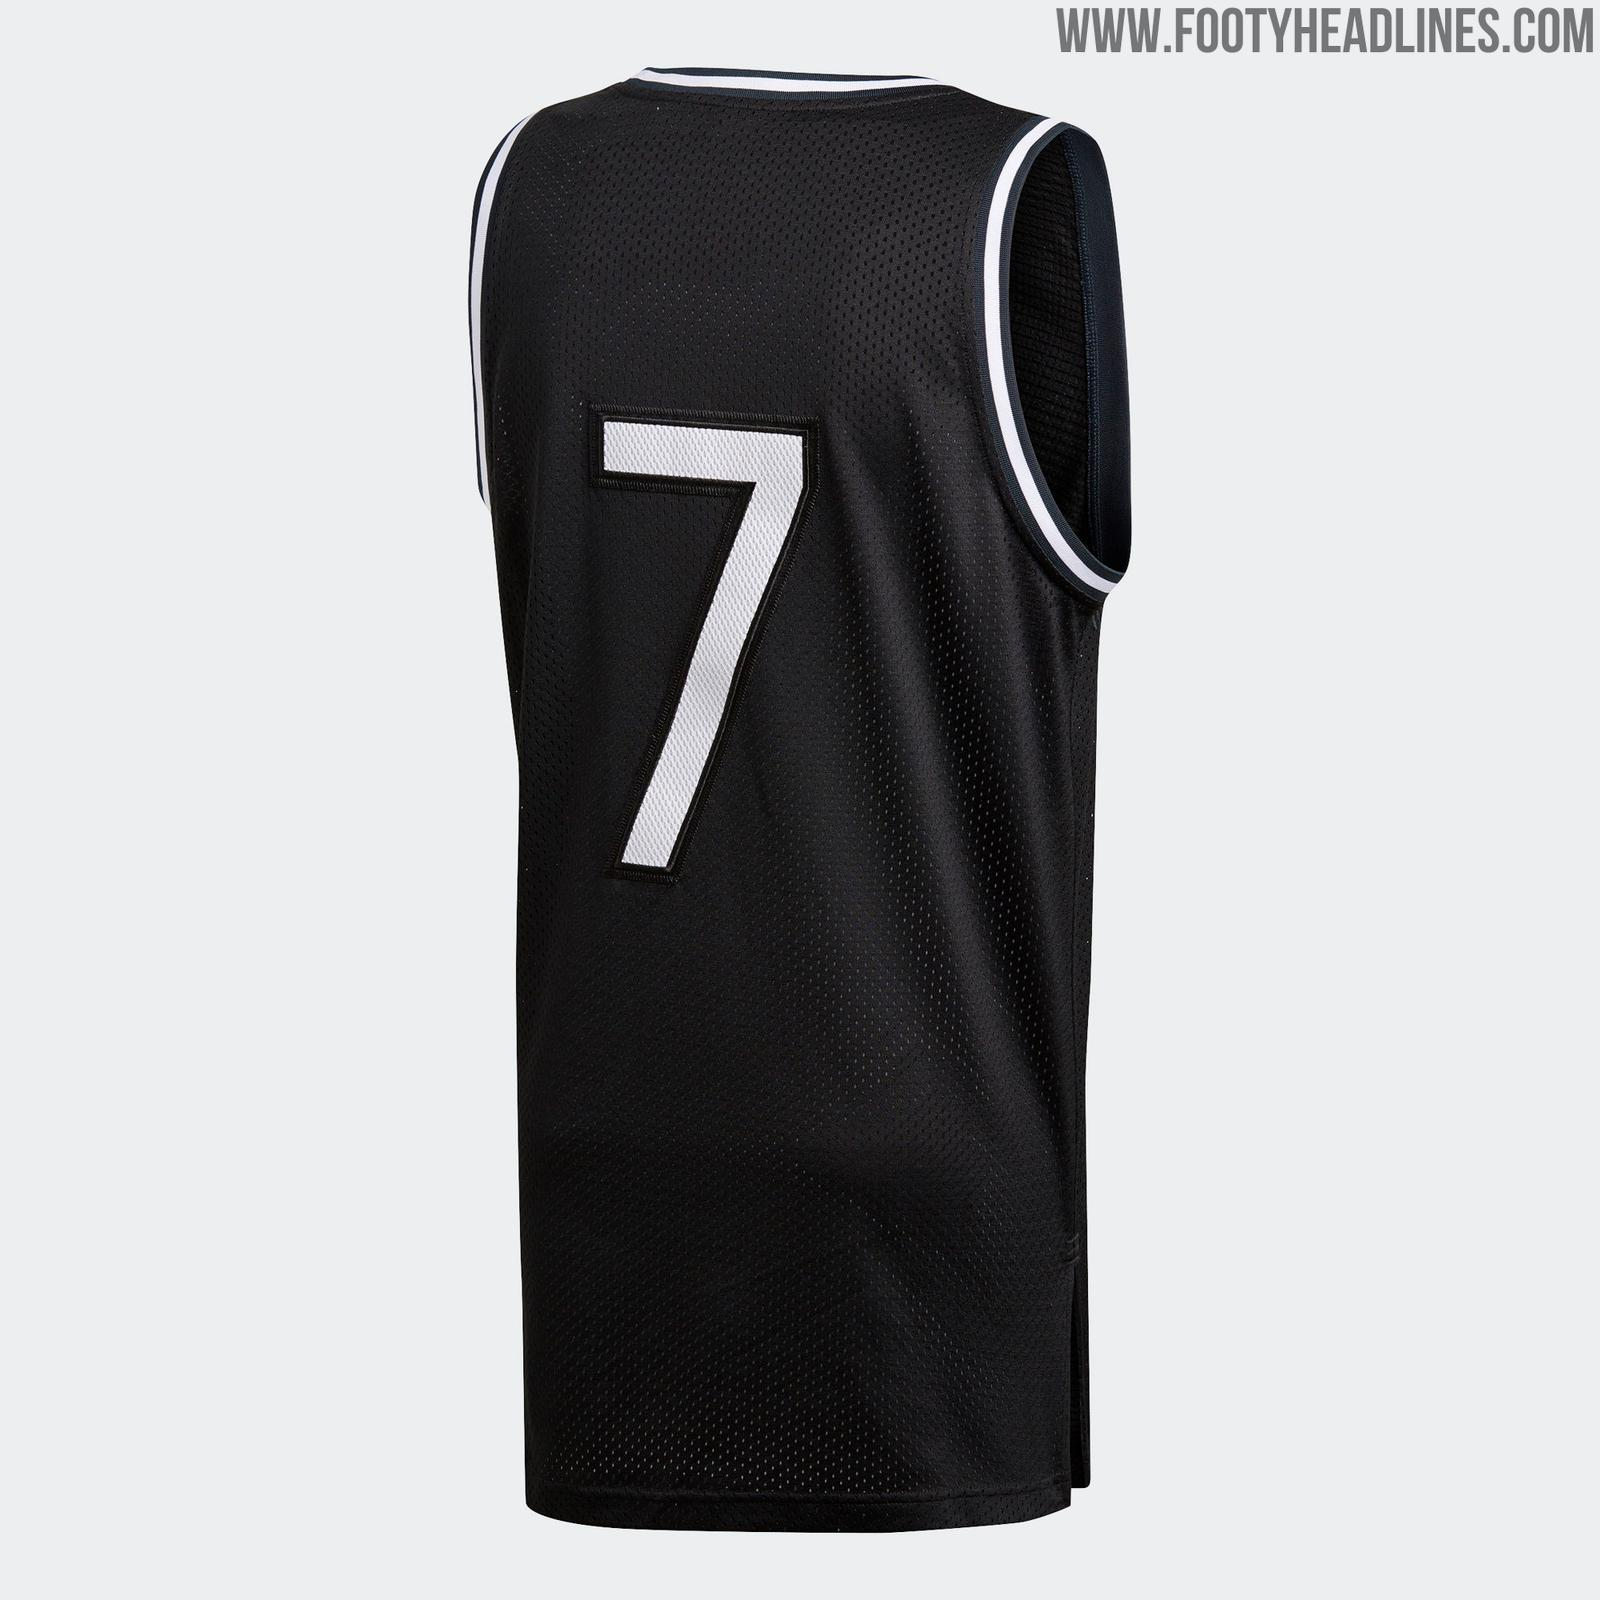 3fc1236002f The Adidas Real Madrid 18-19 basketball jersey   tank top is black with a  large